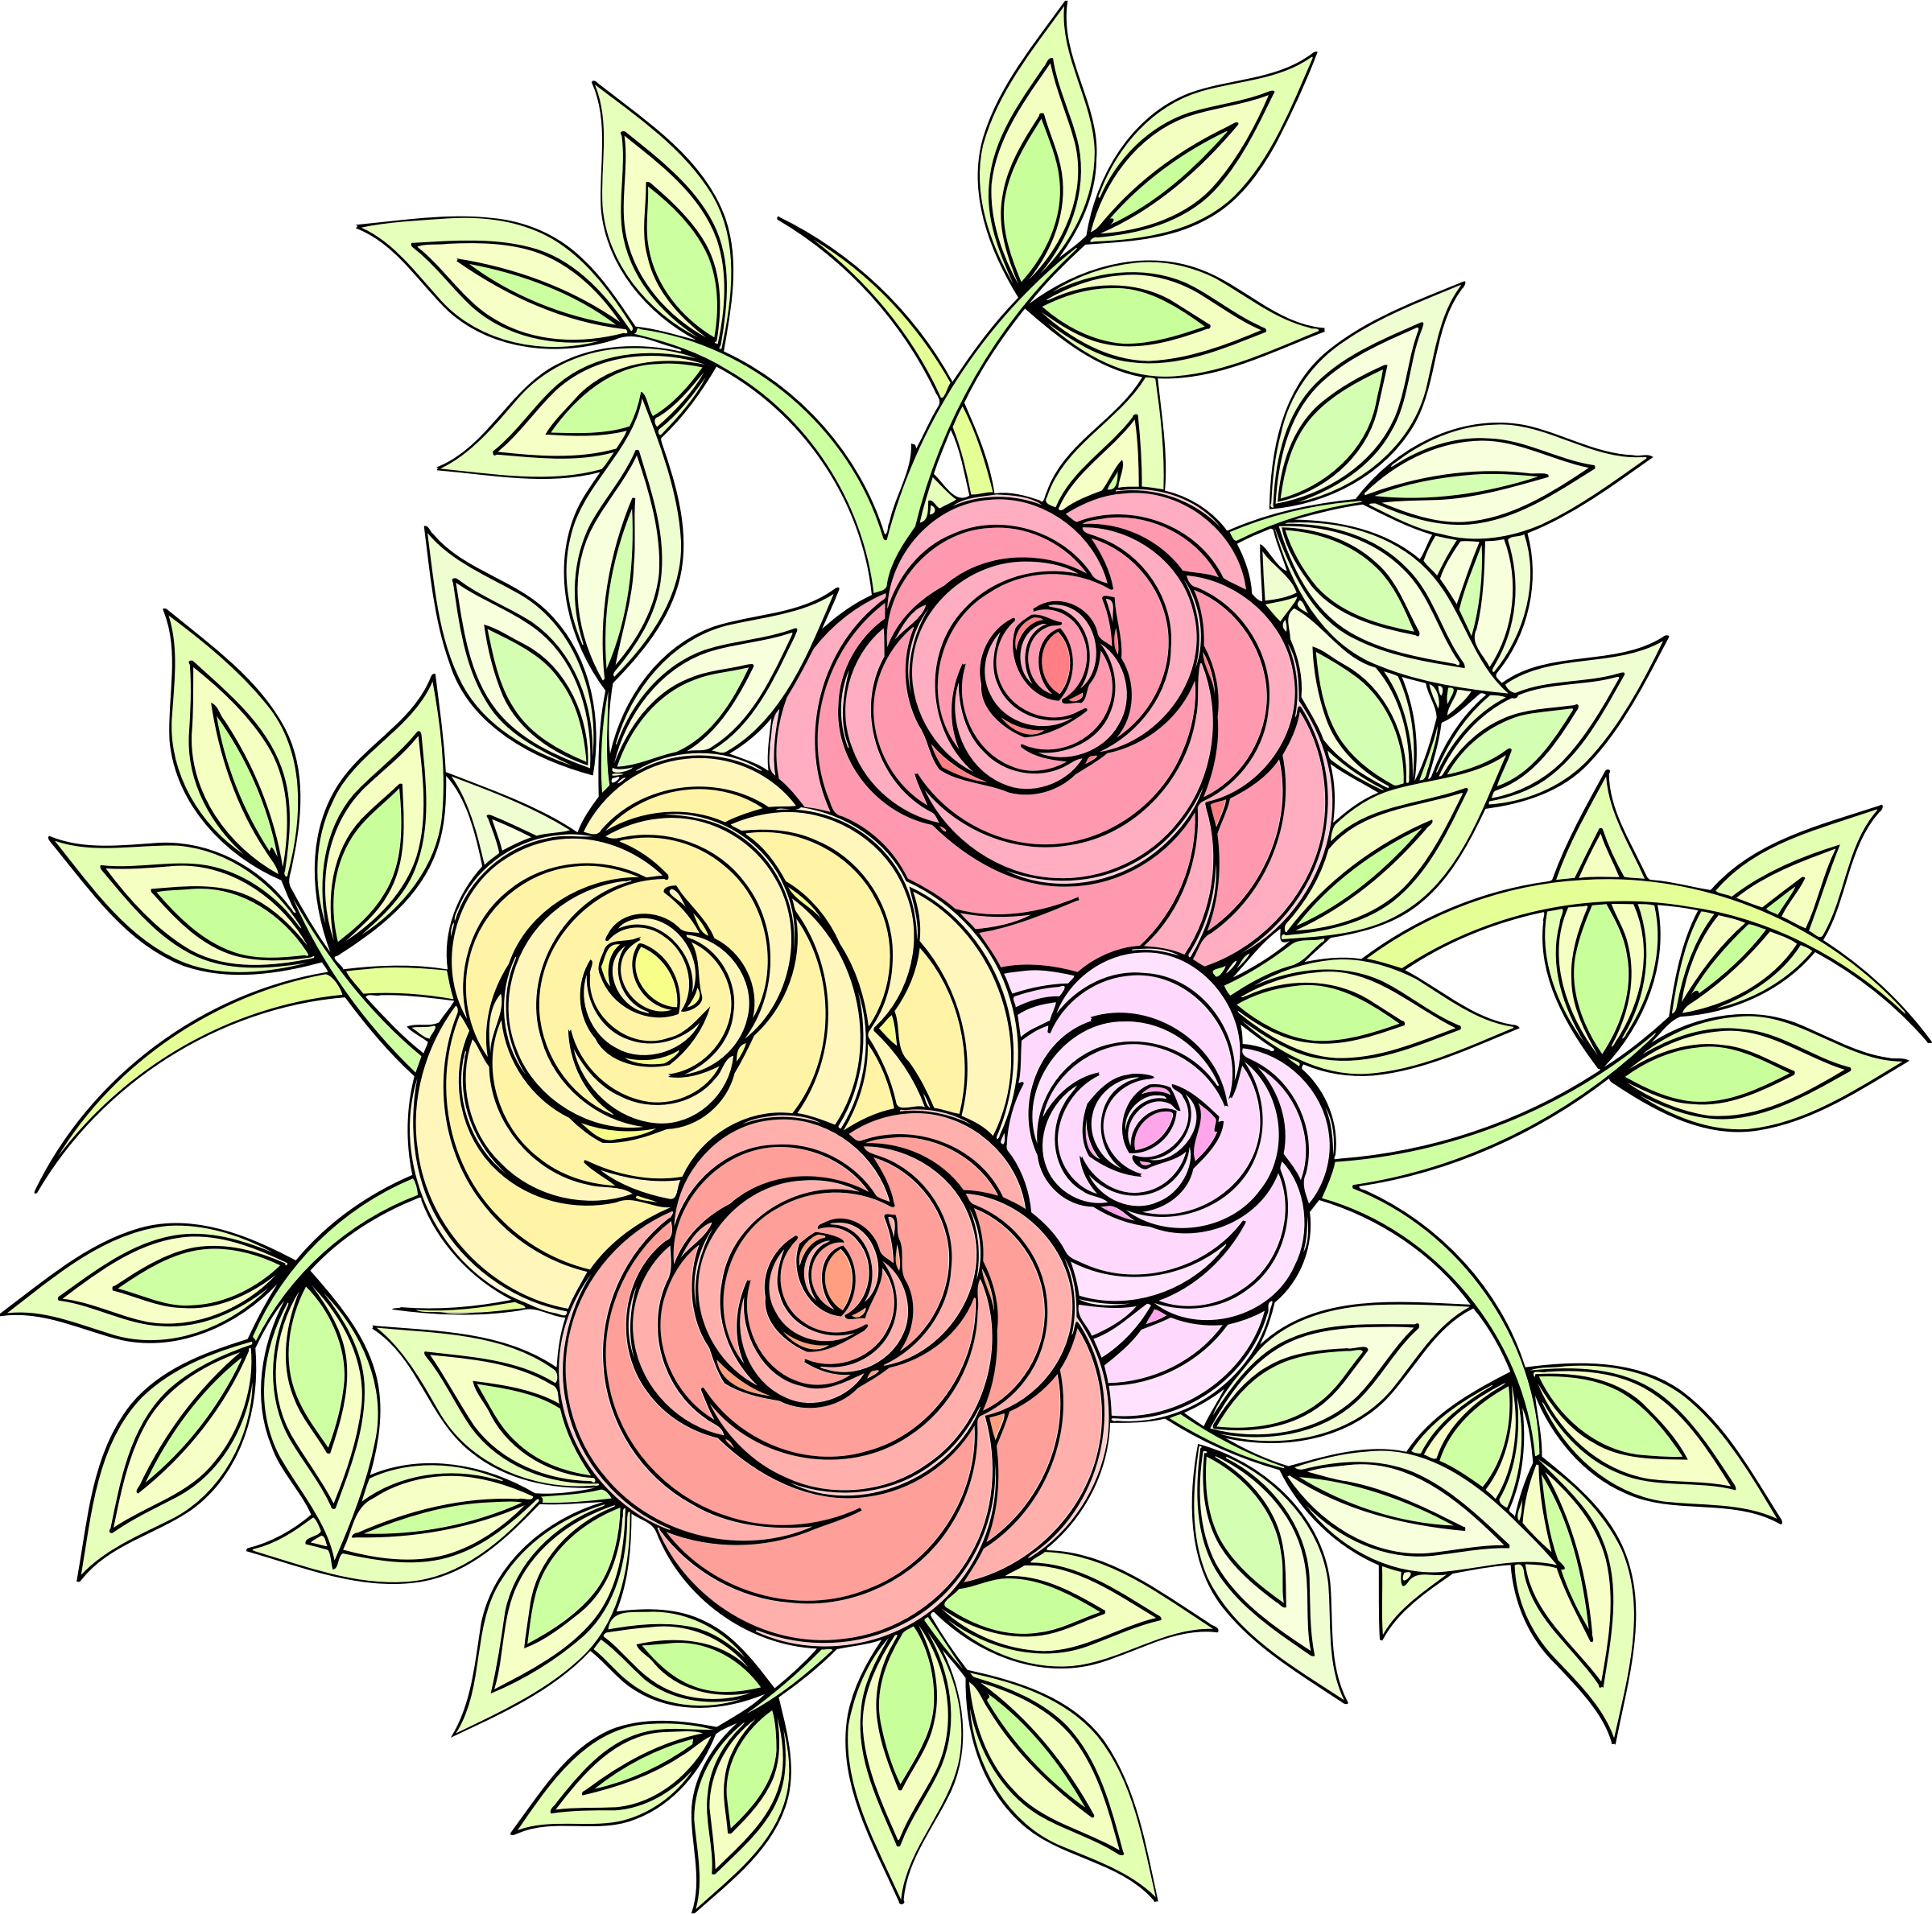 Roses 7 (colour 2) by Firkin